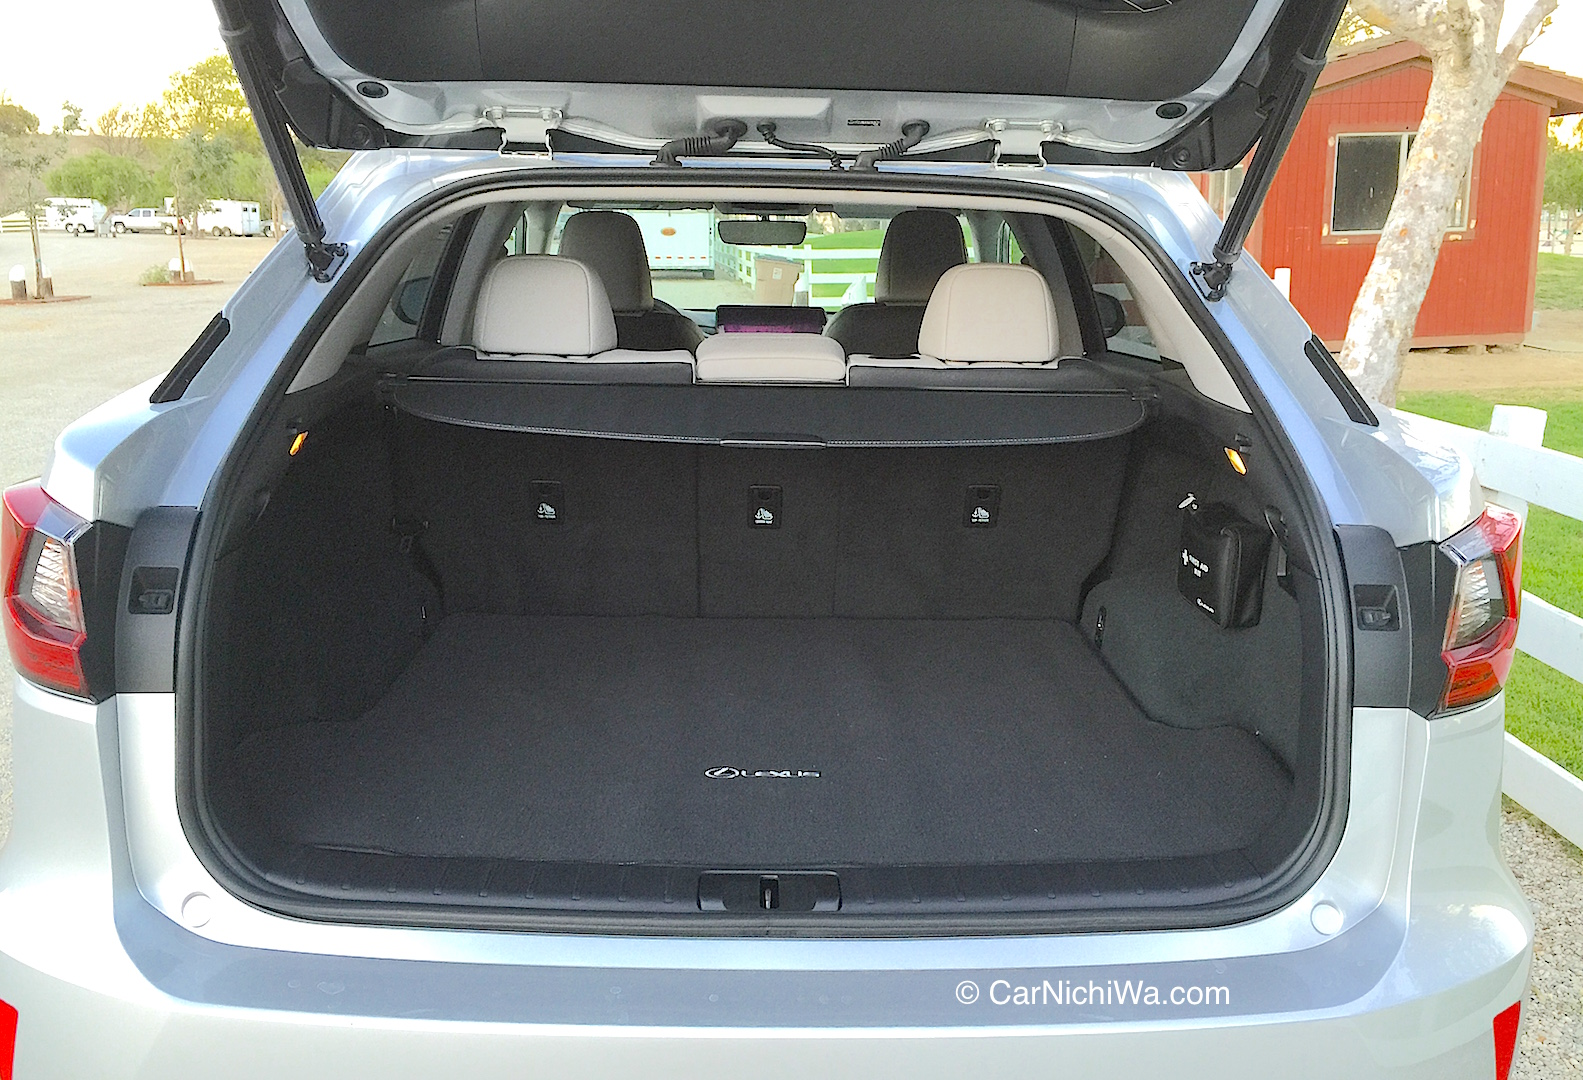 2016 lexus rx 350 review we spend a week driving this bold new crossover carnichiwa. Black Bedroom Furniture Sets. Home Design Ideas